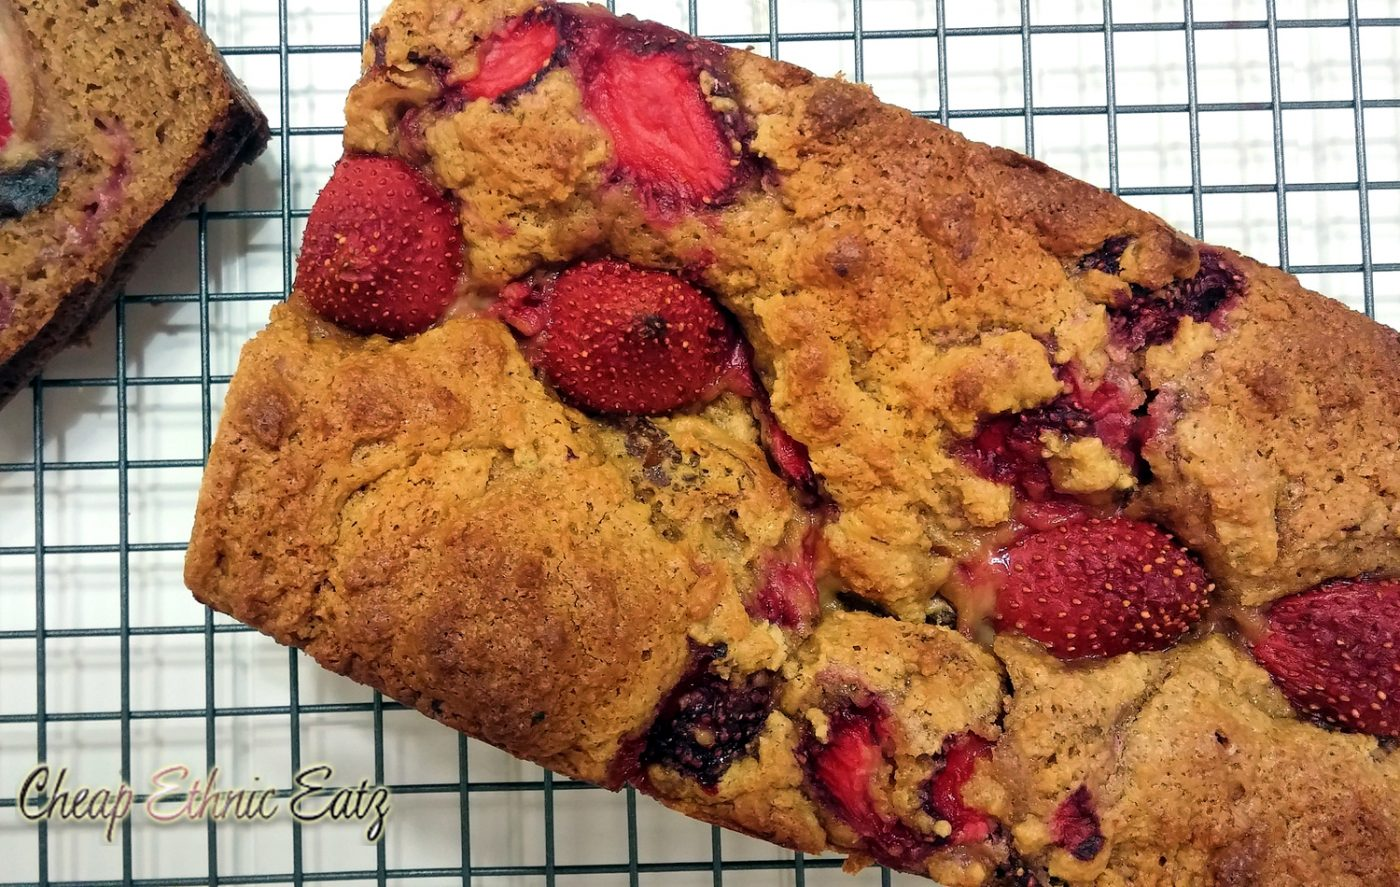 Strawberry and Date Malted Loaf